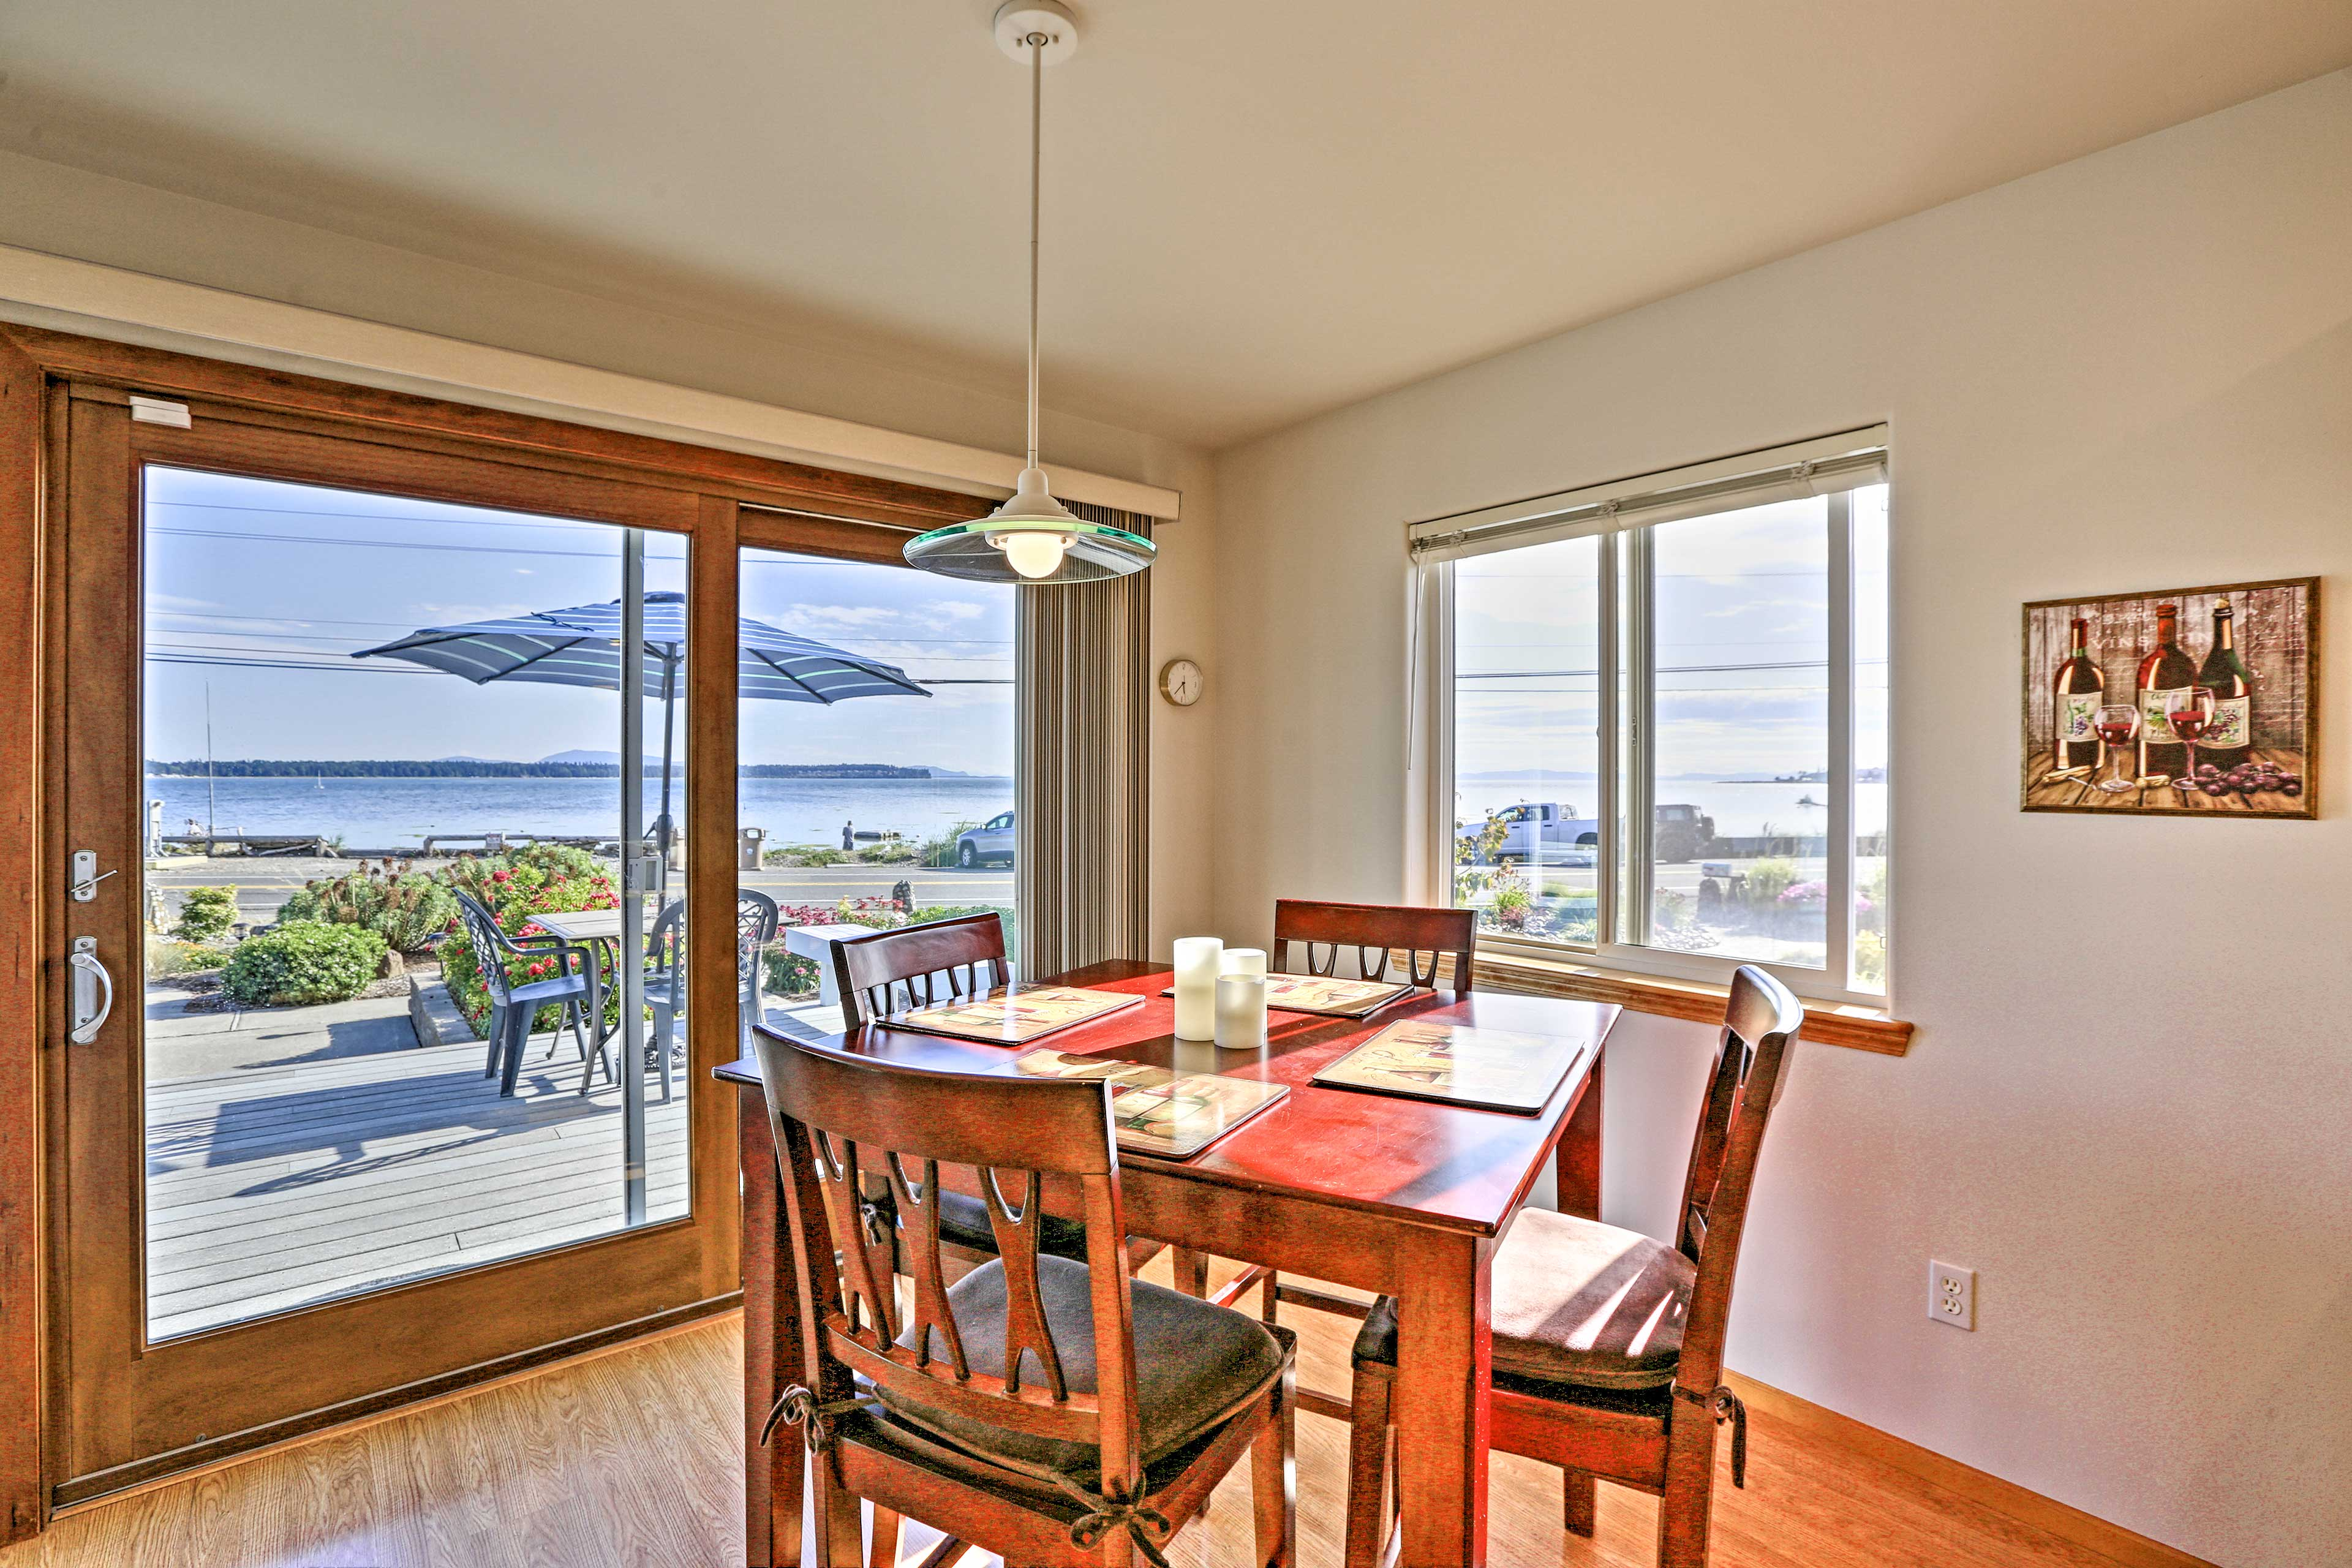 The home boasts both indoor and outdoor dining areas.